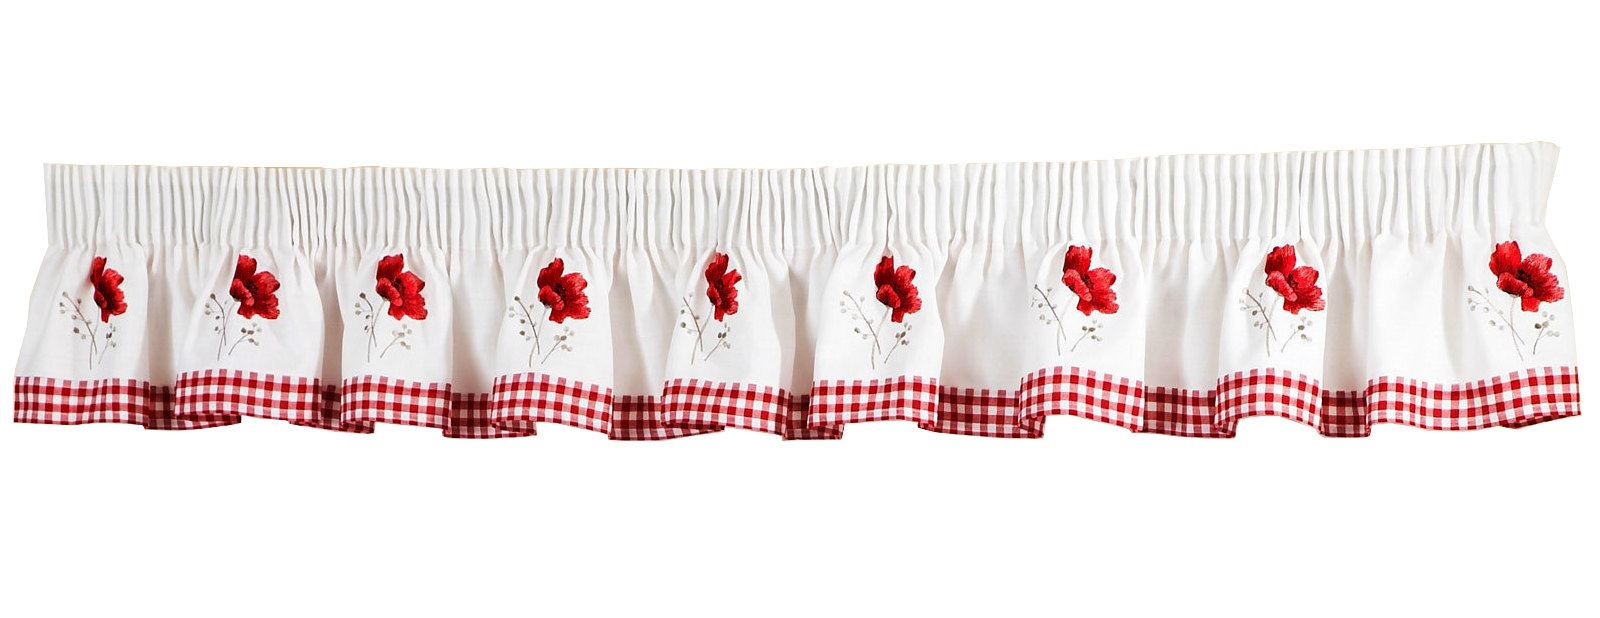 Poppies Gingham Red Embroidered Pelmet To Match Kitchen Curtains 136 X 10 5039373047775 Ebay